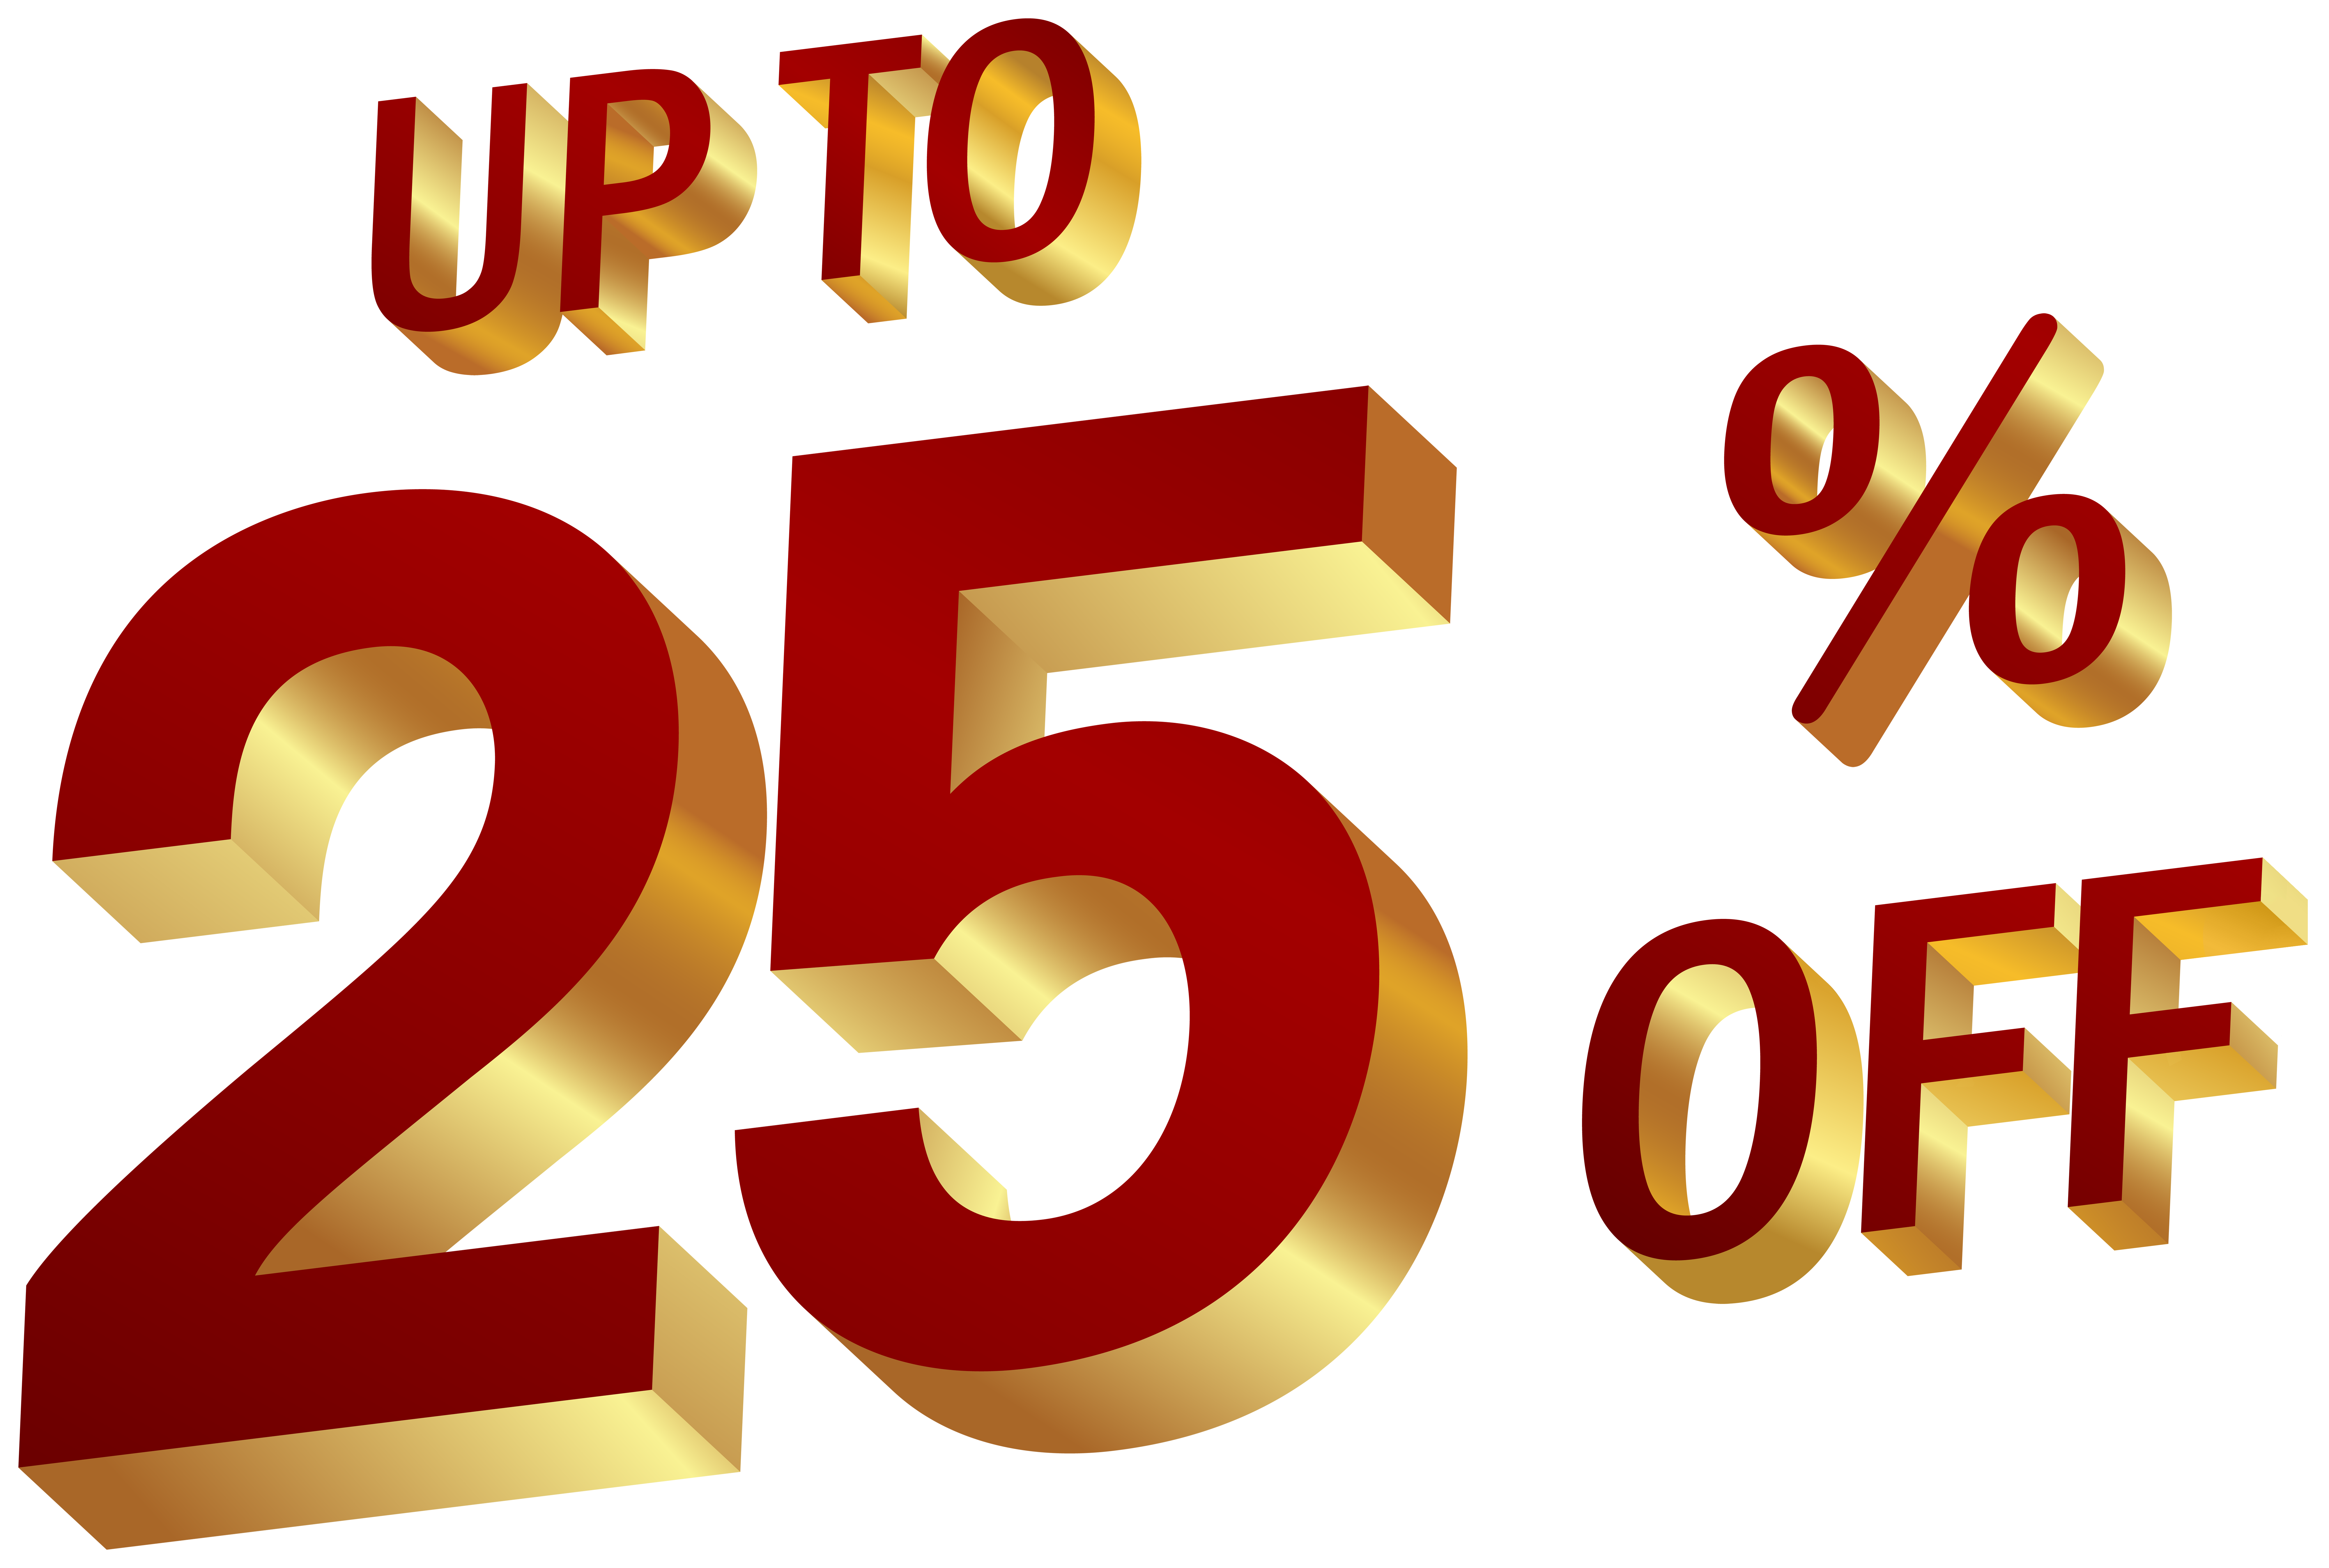 25 percent off clipart picture freeuse download 25 Percent Discount Clip Art Image | Gallery Yopriceville - High ... picture freeuse download